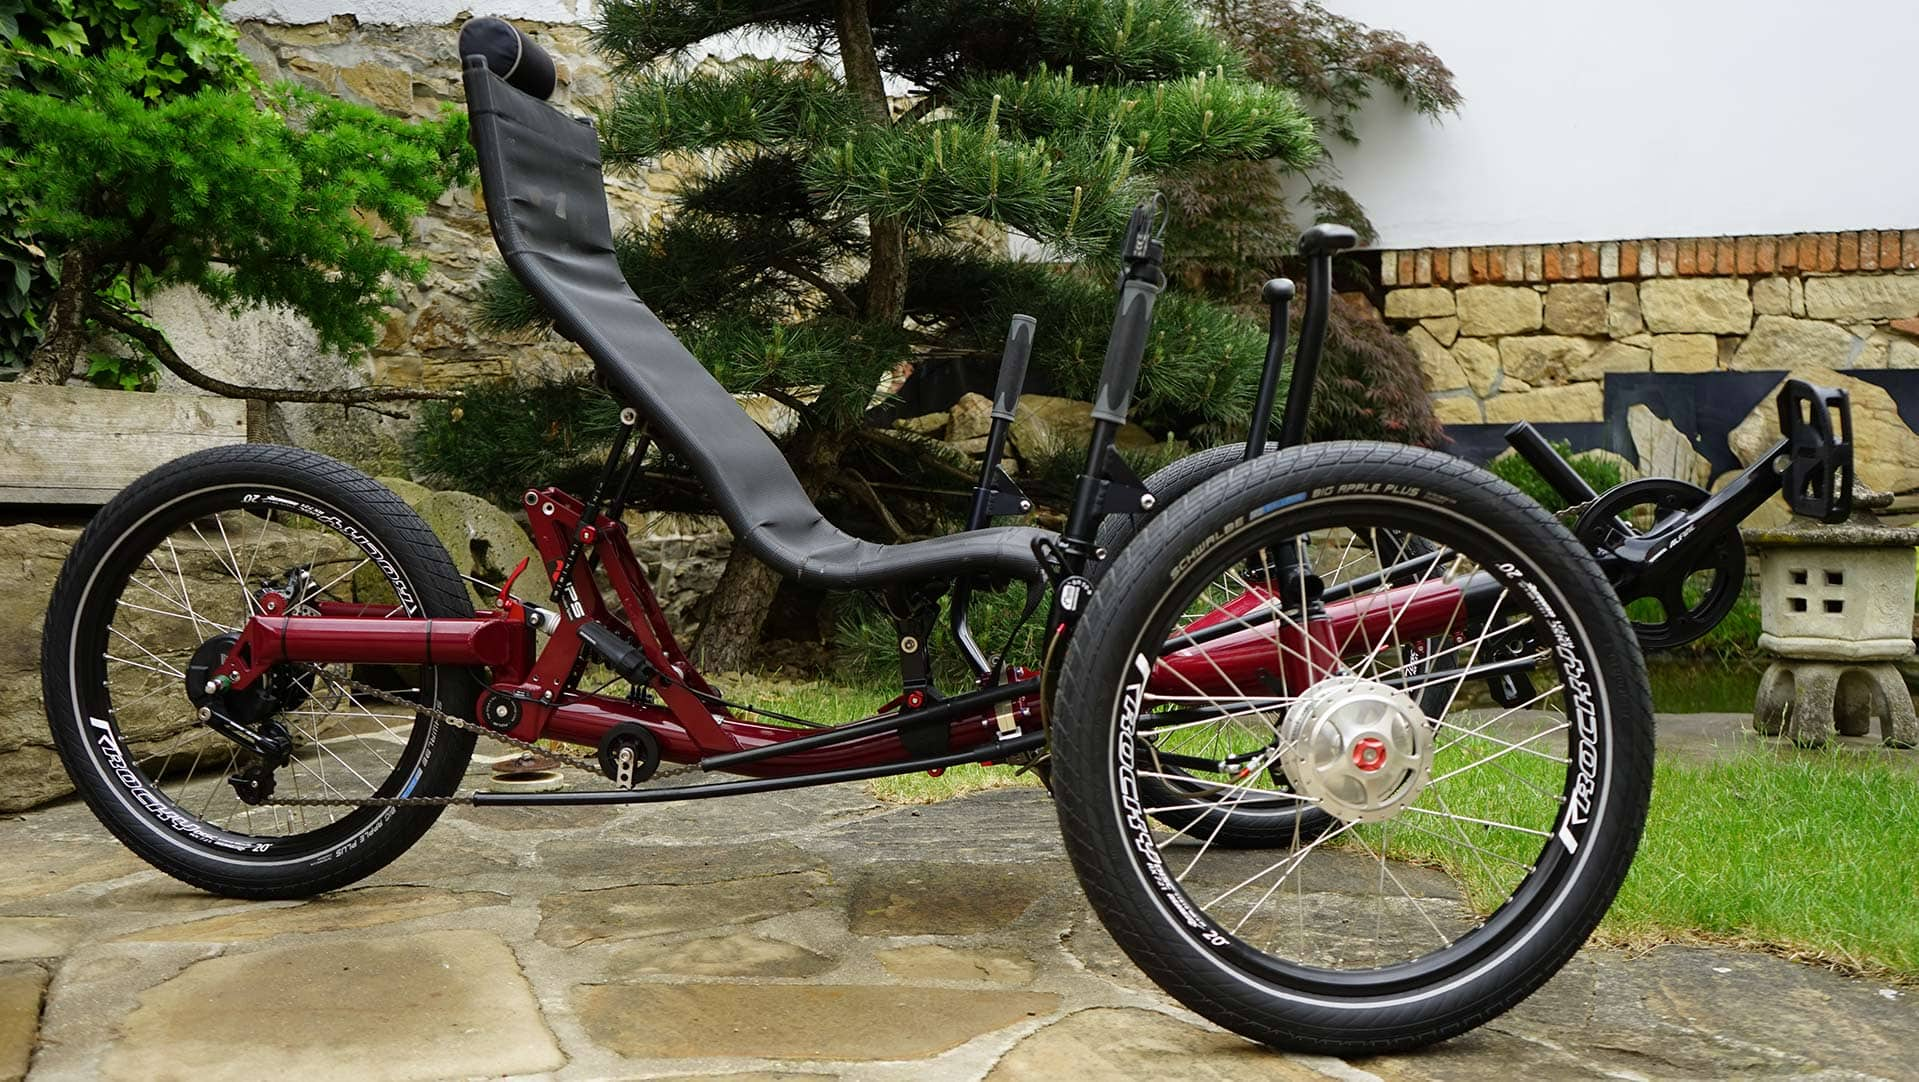 azub_tricon20_recumbent-trike_shimano-alfine_disabled-modification_001